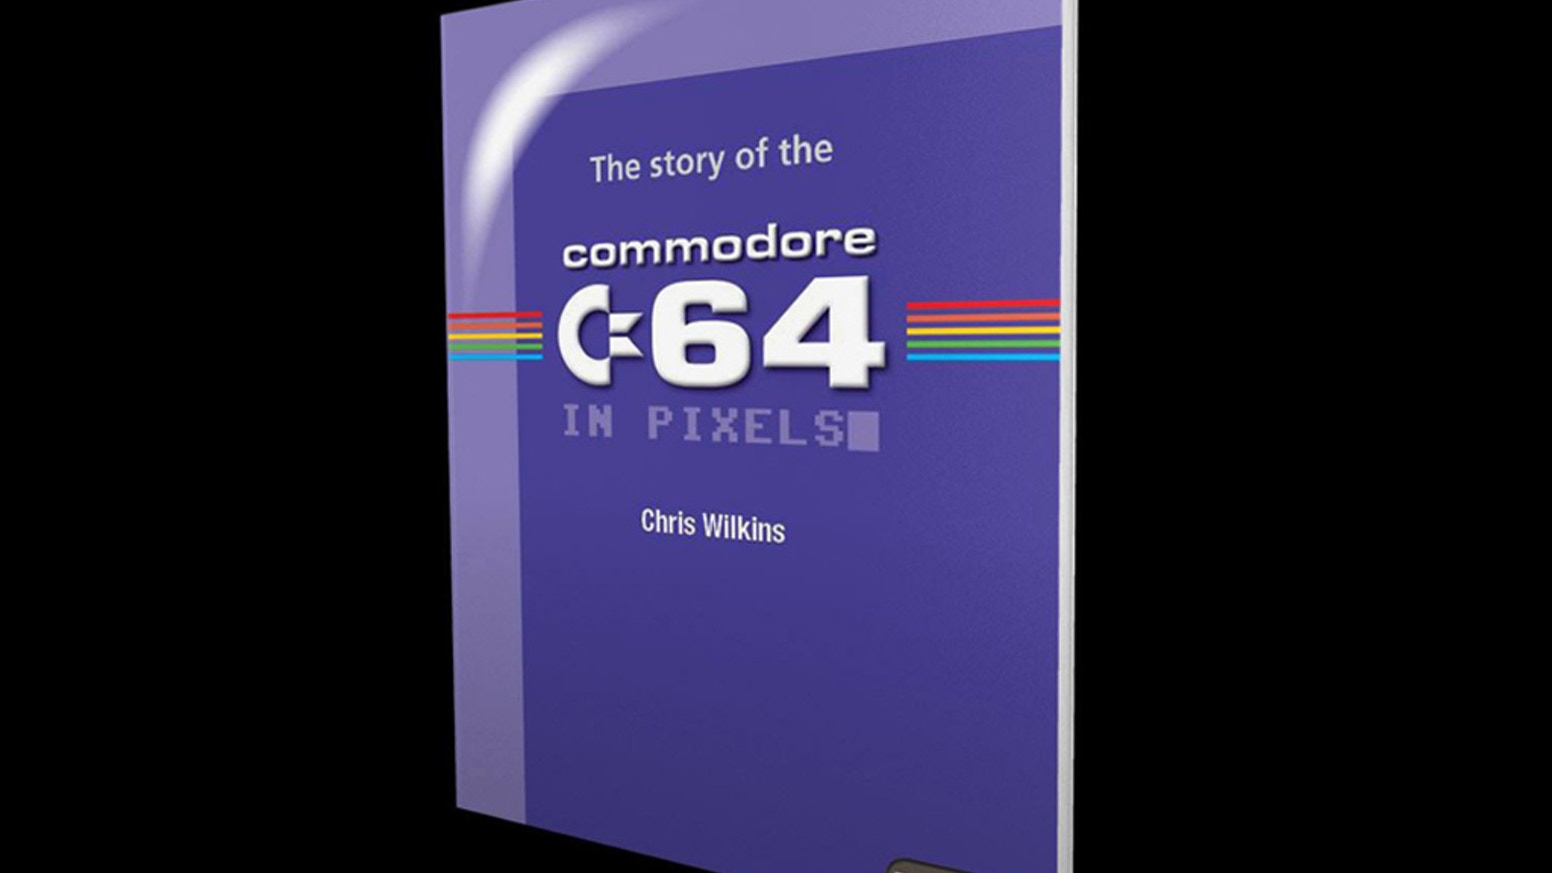 A high quality book on one of the world's most popular 8-bit computers - the Commodore 64.